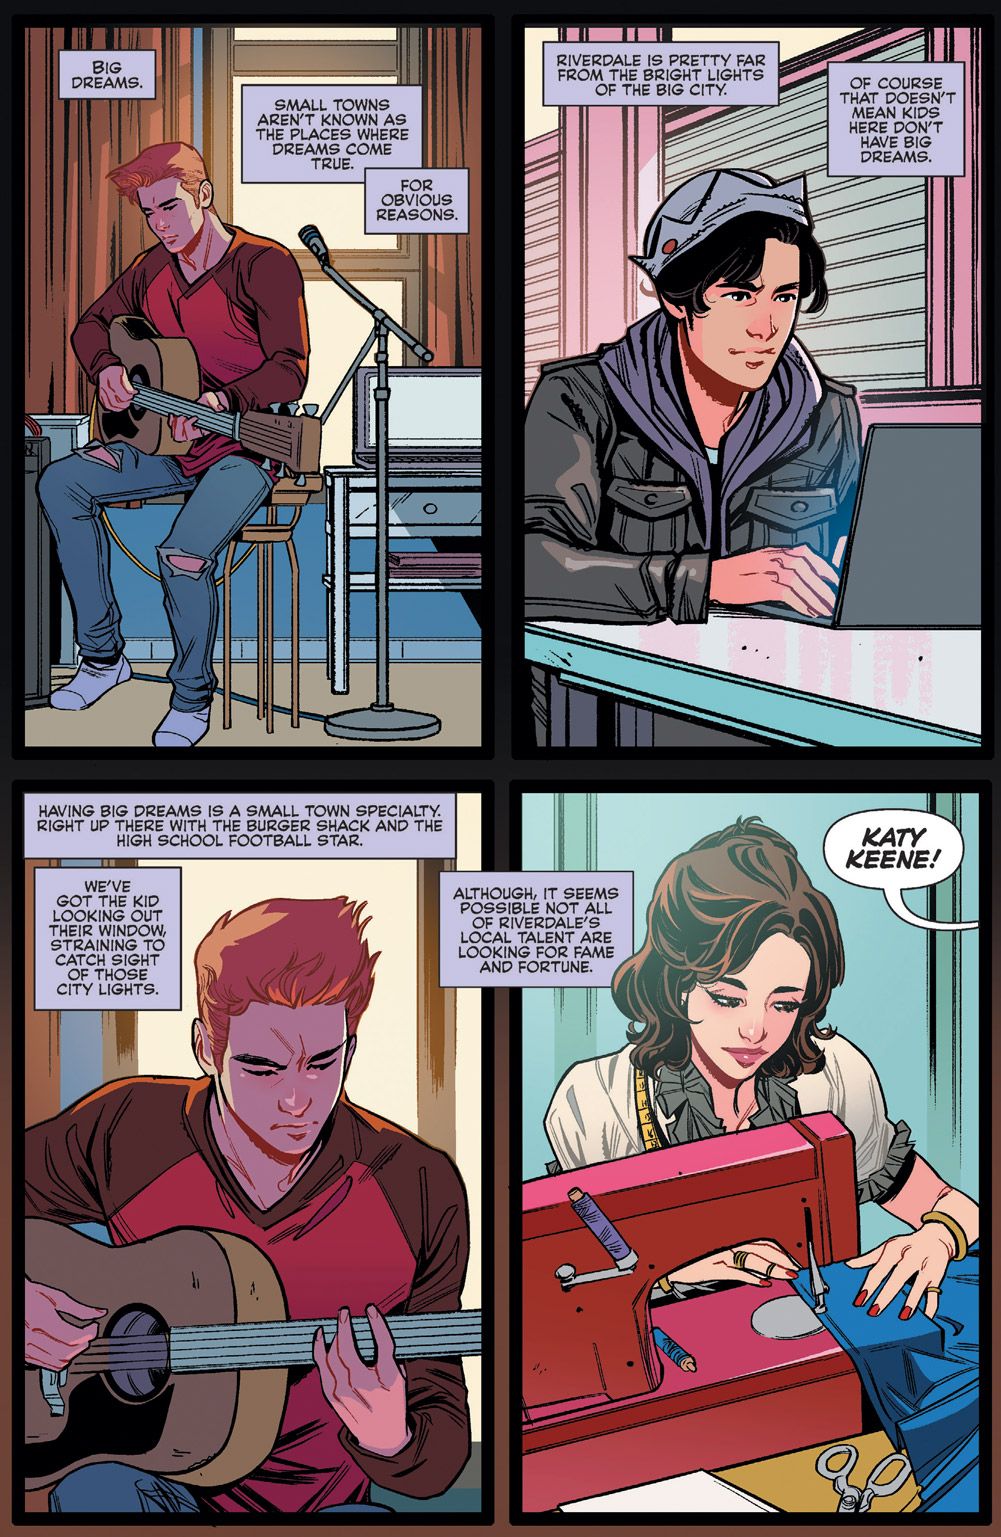 Jughead Narrating the story being told.